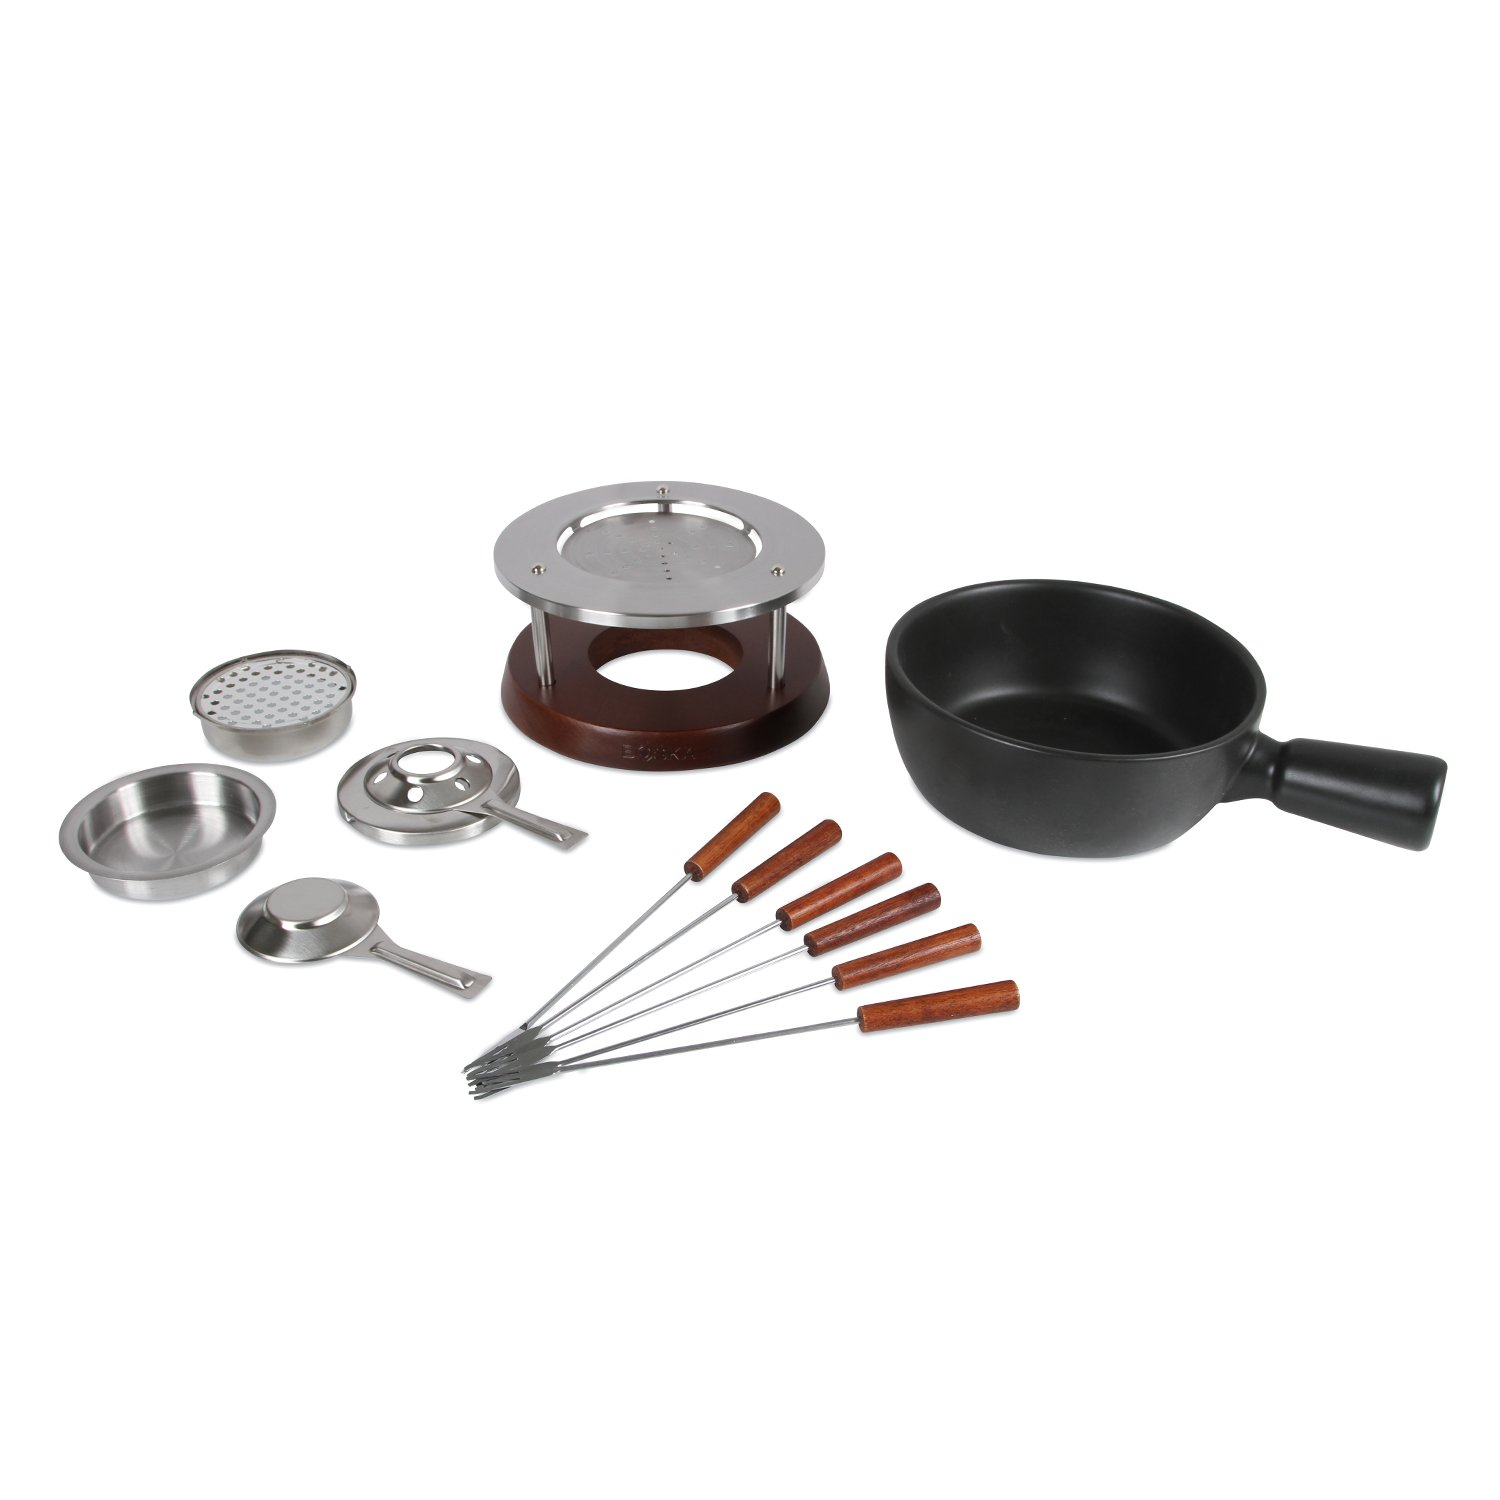 Boska Holland Taste Collection Nero Fondue Set by Boska Holland (Image #4)